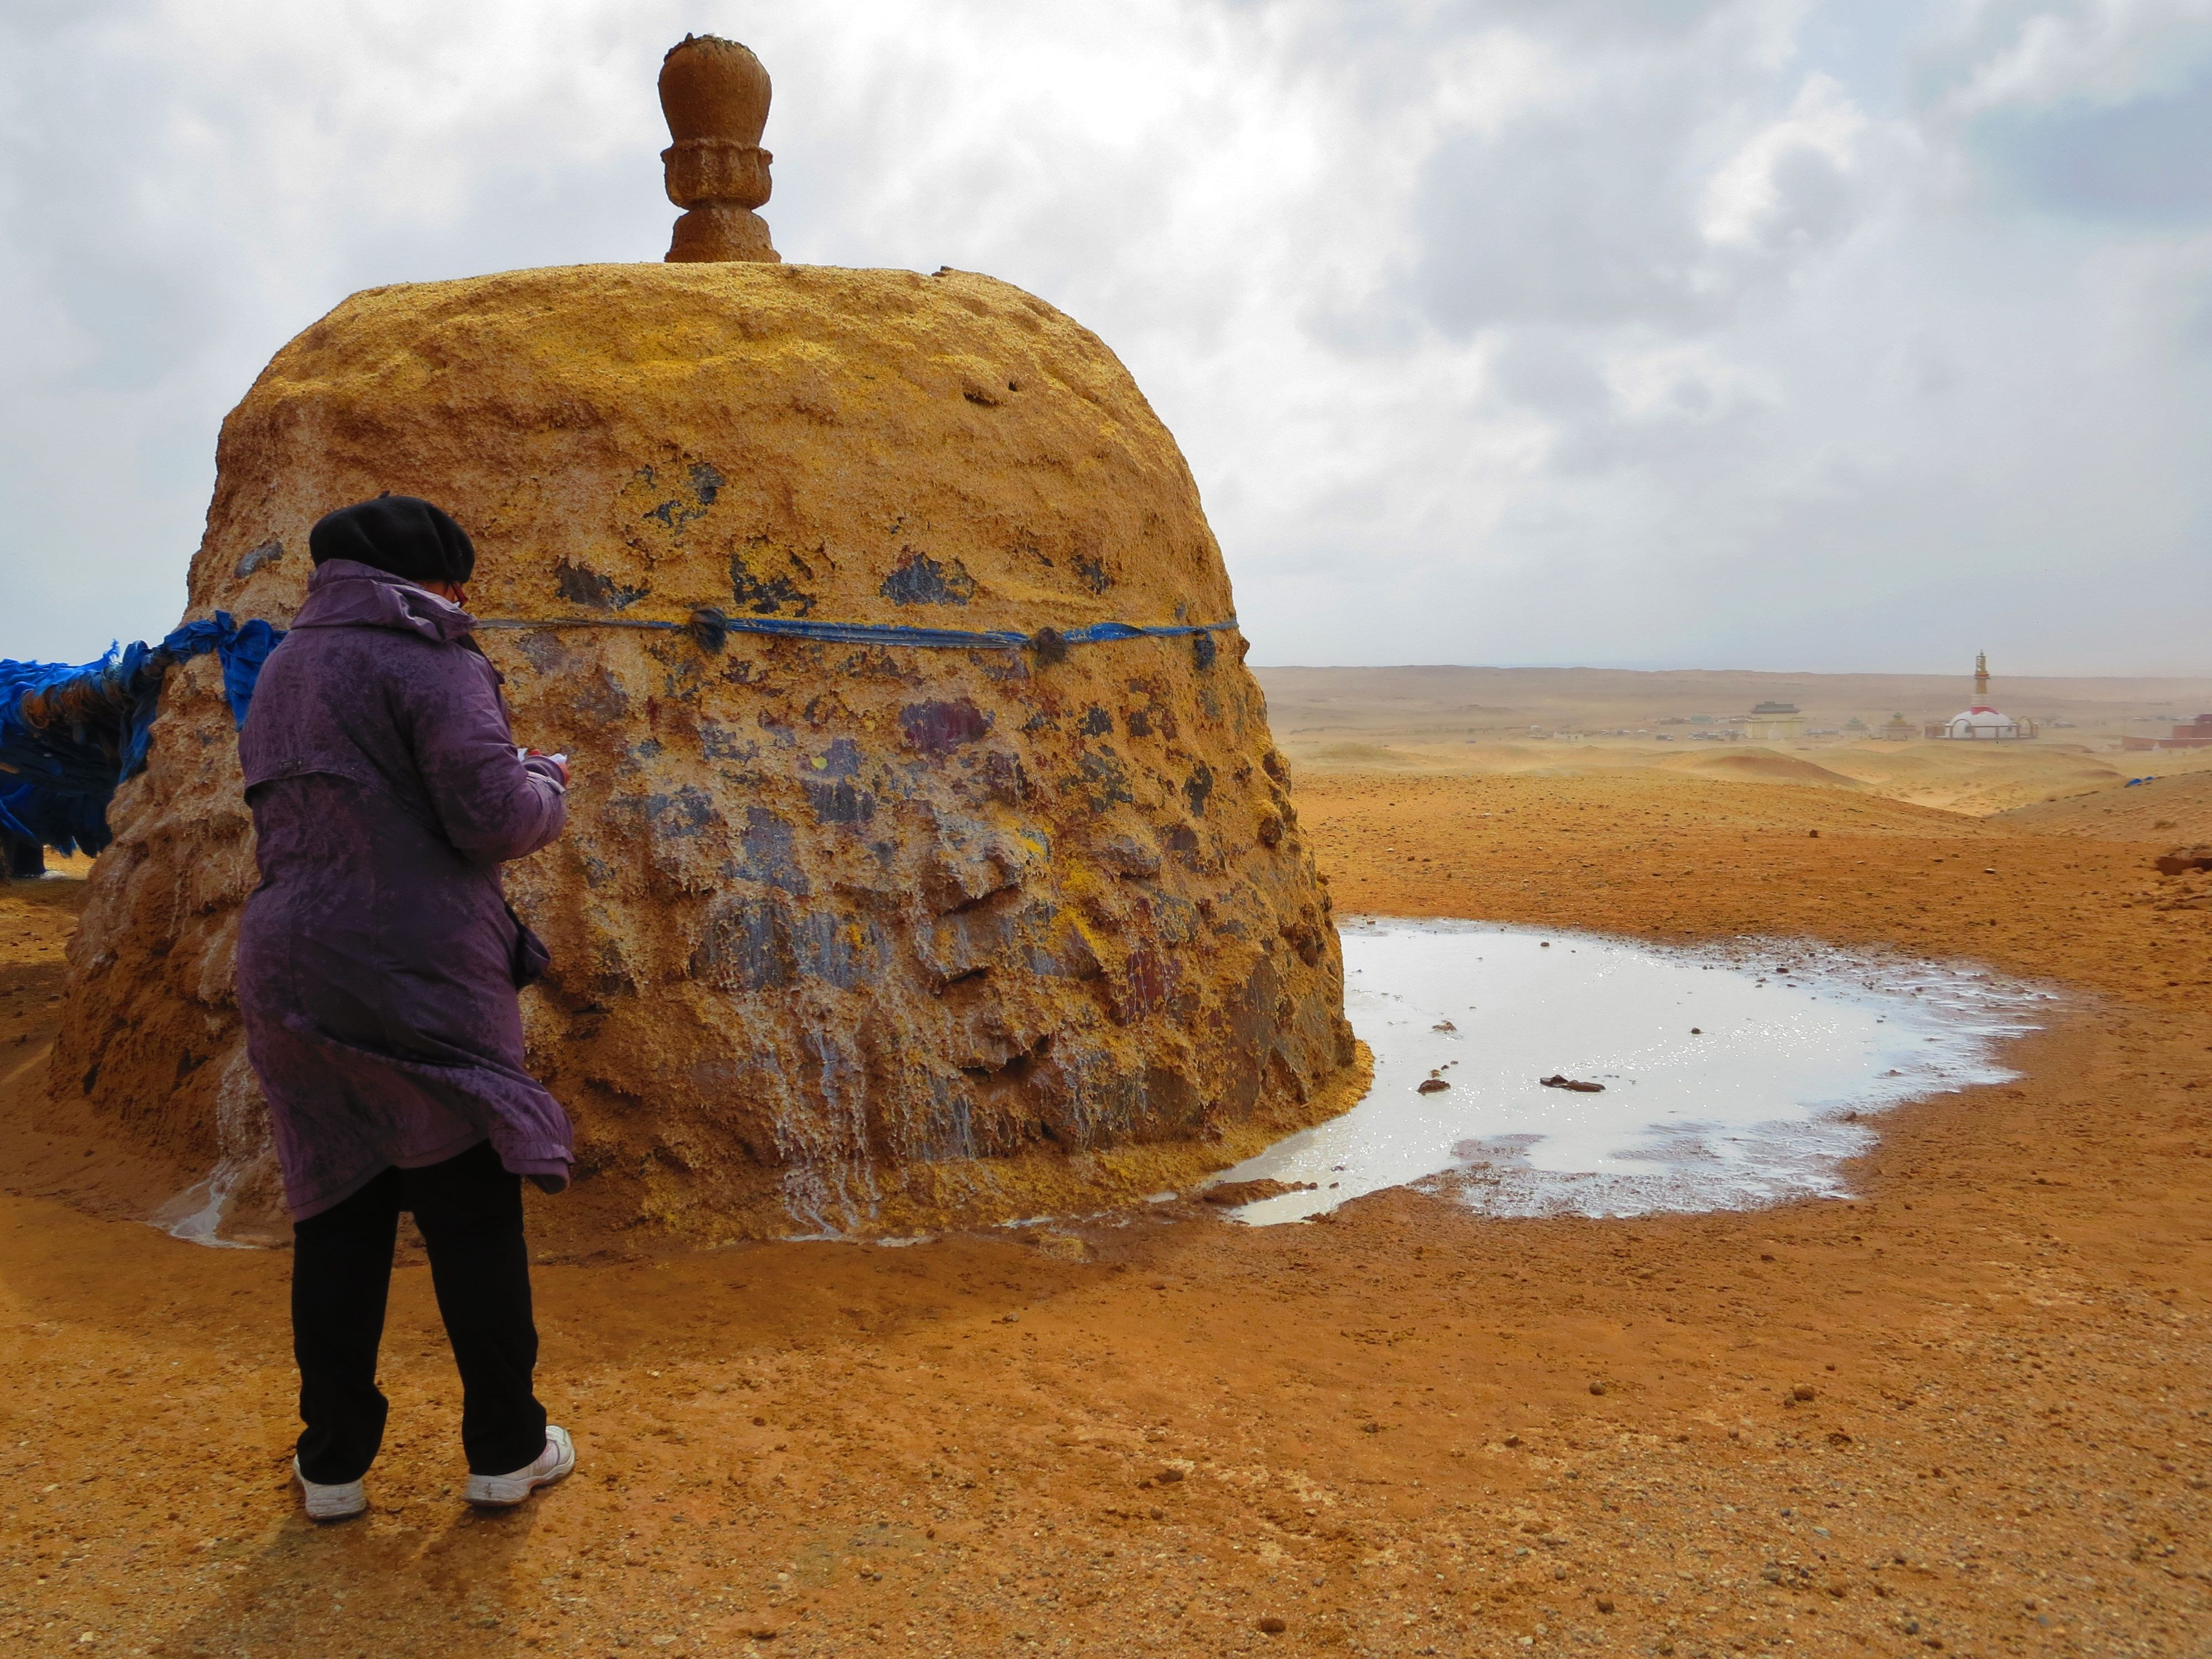 a mongolian shrine or oovoo to carry prayers for fertility milk